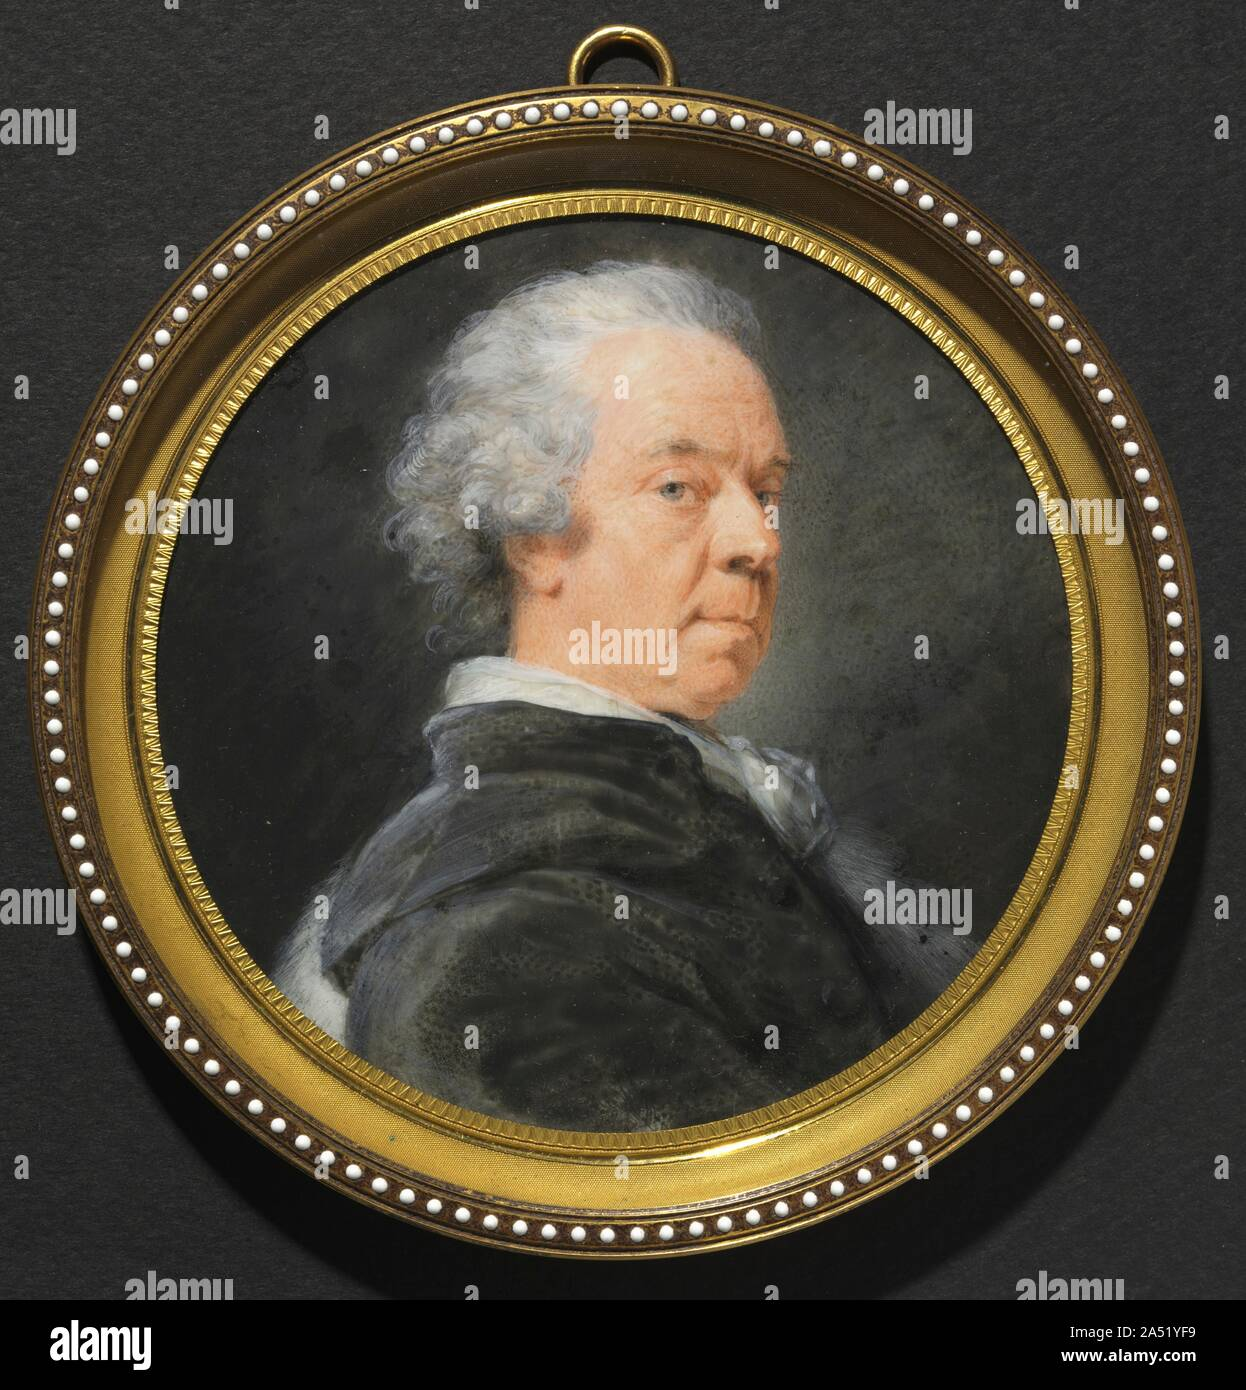 """Portrait of Ivan Grigorevich, Count Chernyshev, c. 1785. Heinrich Füger, known as the """"Cosway of Vienna,"""" was born in Germany and studied in Italy and Vienna, where he became a court painter to the imperial family. Like Cosway, Füger drew his clientele from aristocratic circles. However Füger was less flamboyant than Cosway, capable of capturing the sitter's individual character and personality. Stock Photo"""